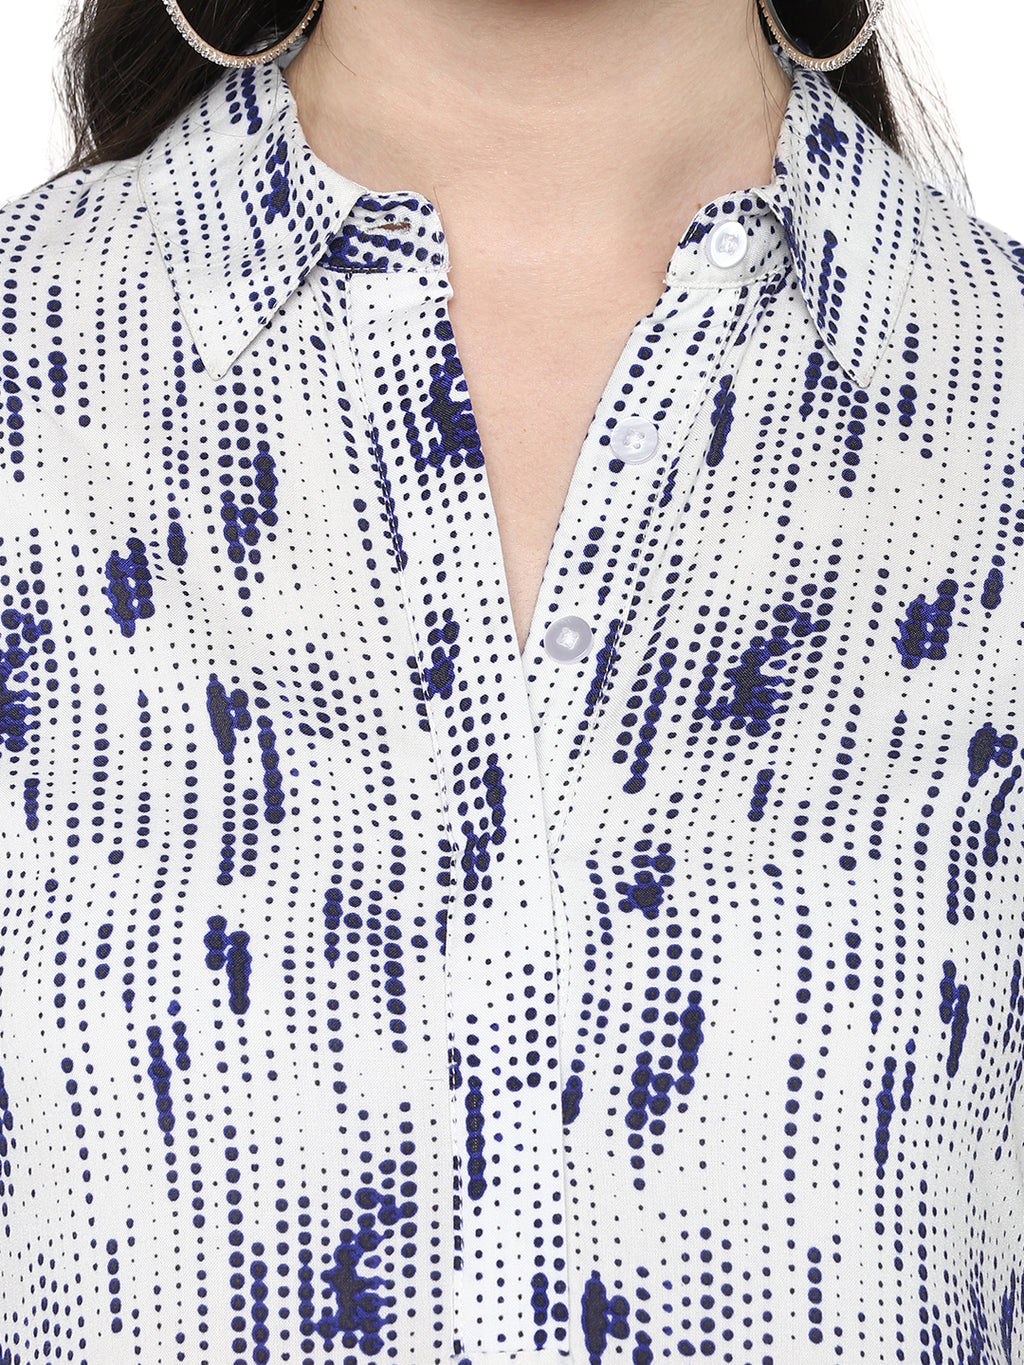 White And Blue Dots Nursing Top With Front Tie Up - momsoon maternity fashion wear